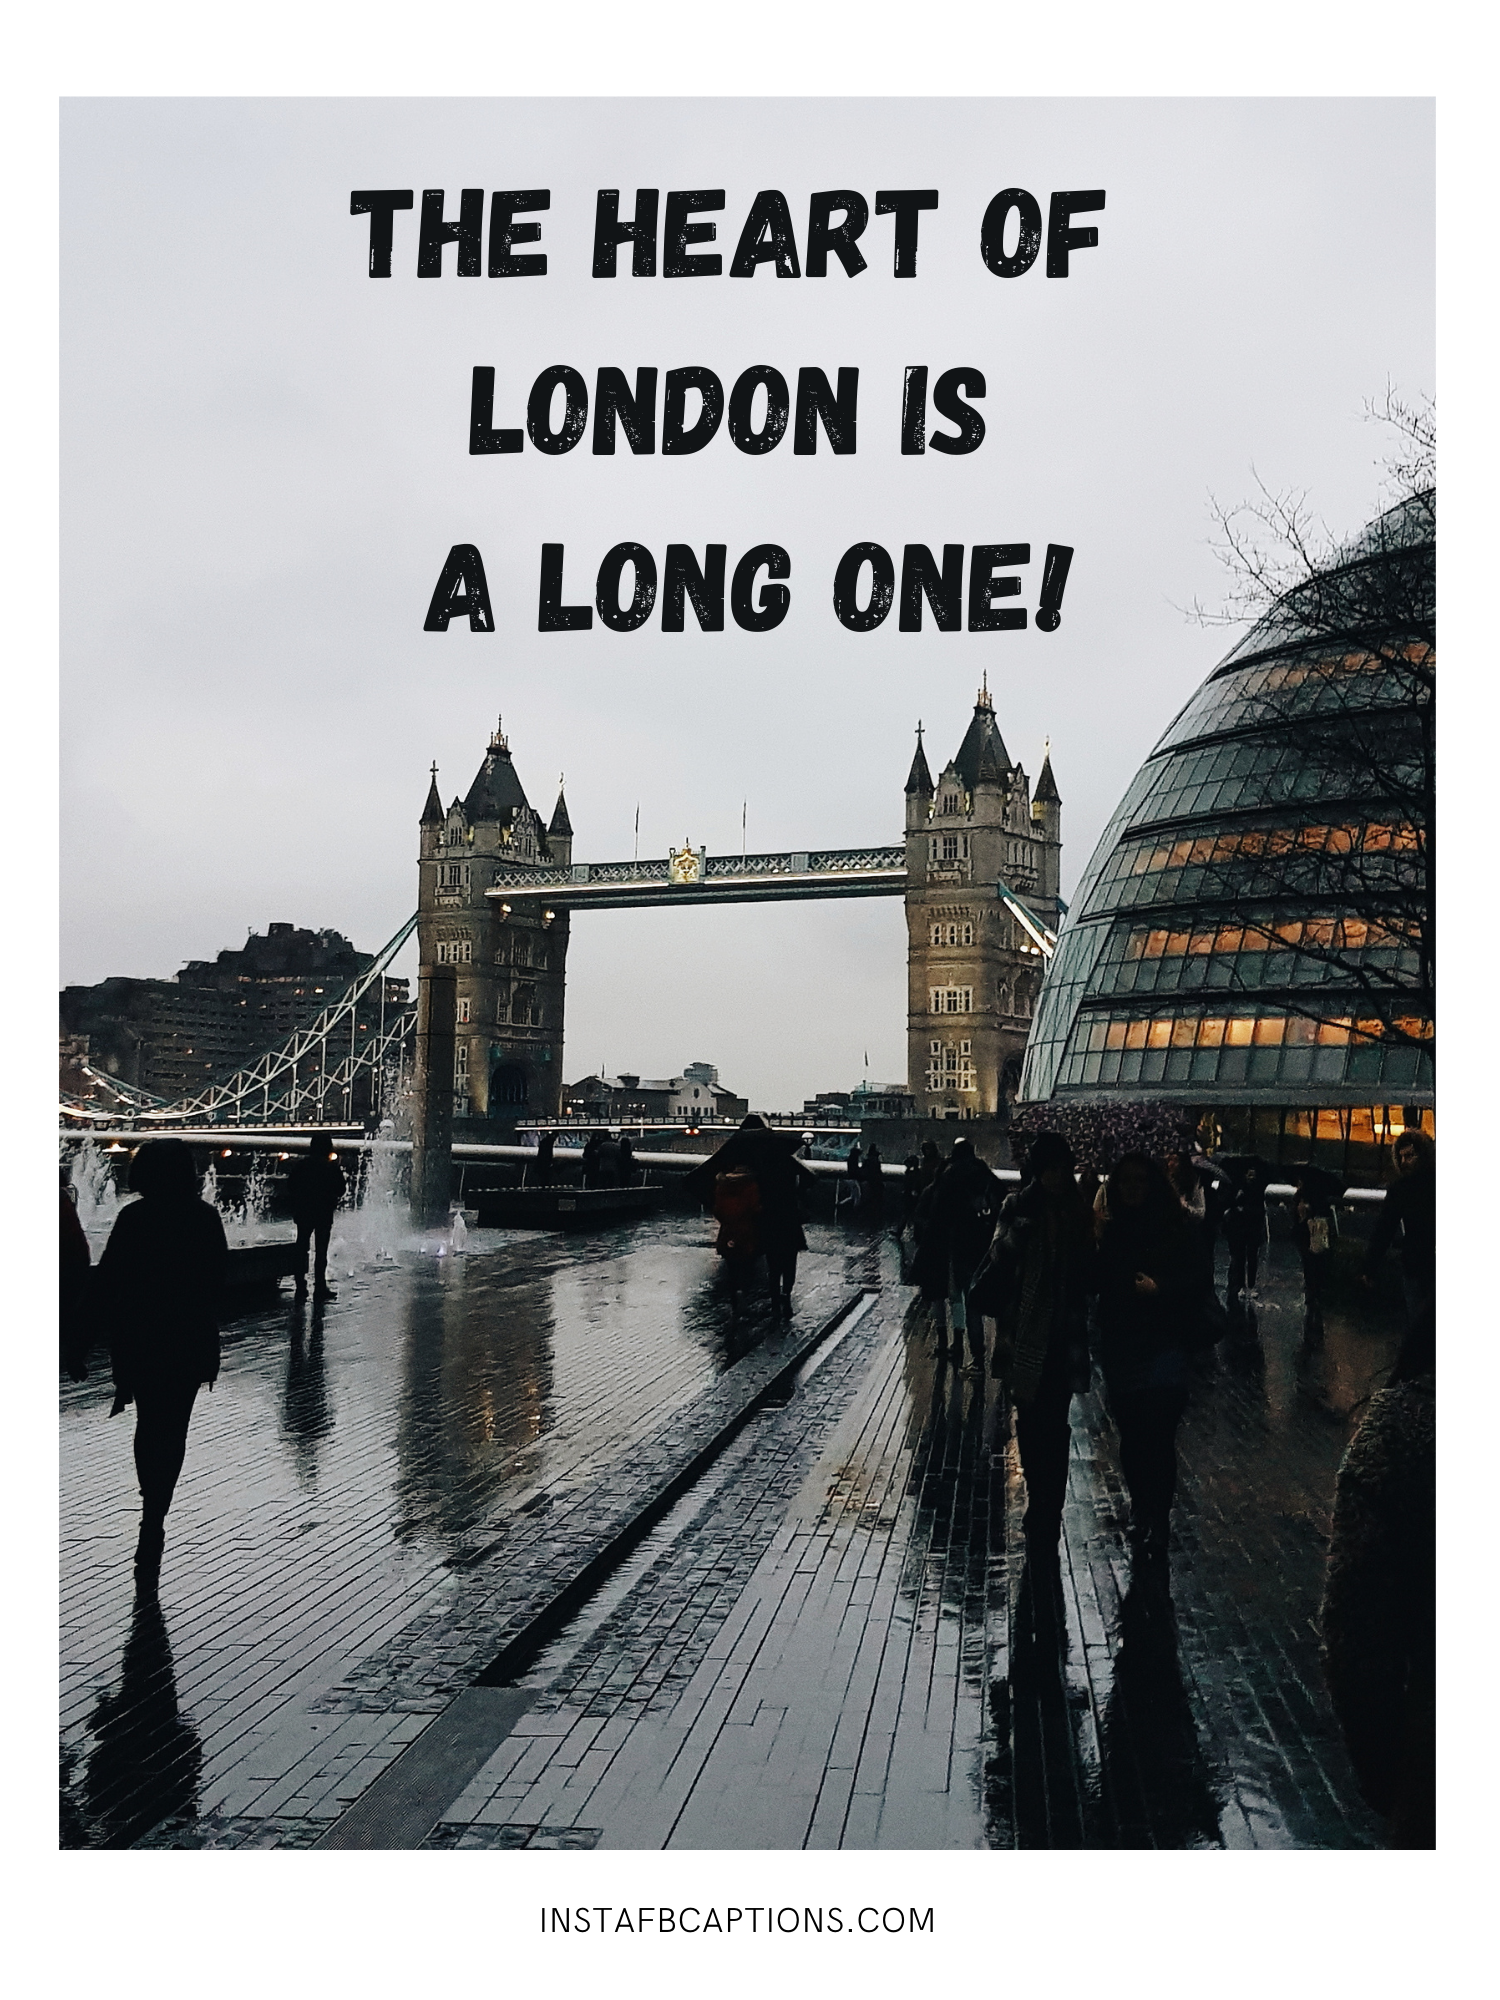 Elegant Quotes On The Famous London Bridge  - Elegant Quotes on the Famous London Bridge - 99+ LONDON Instagram Captions for London Diaries, Bus, & Dreams in 2021